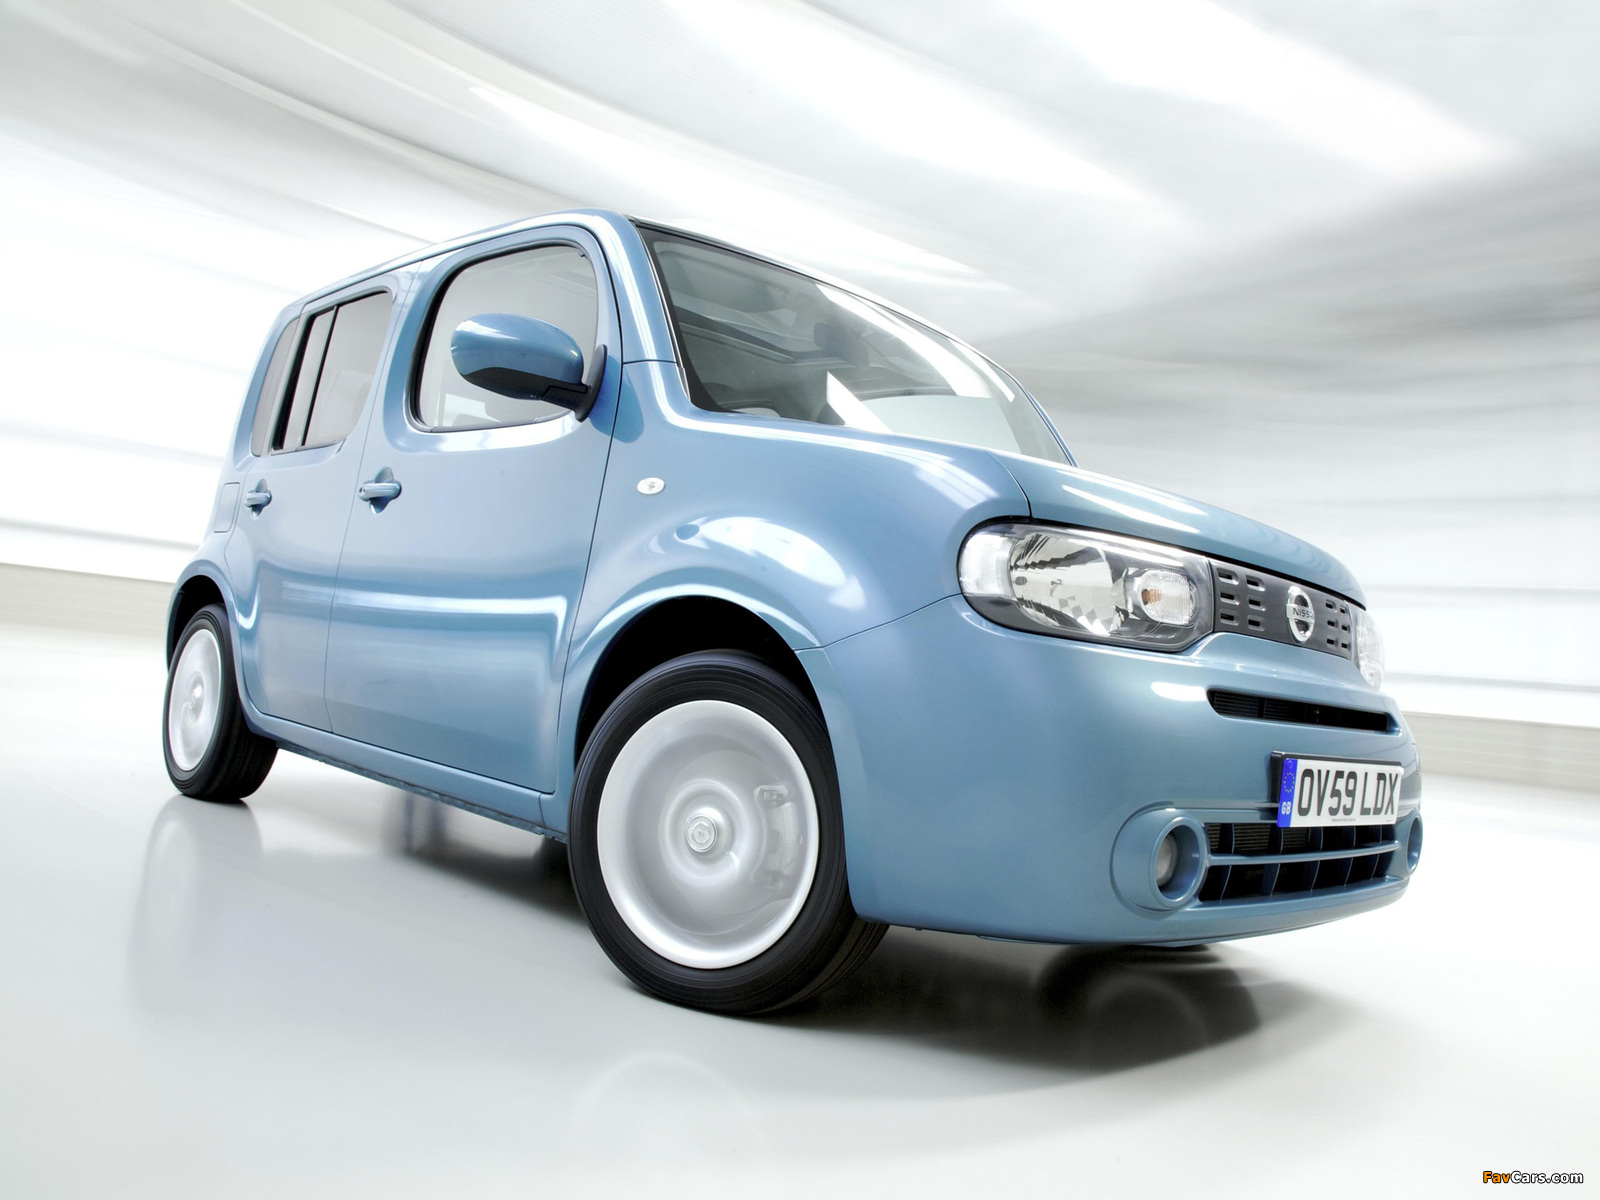 Pimp My Daihatsu Materia Par Inden Design in addition 3 likewise 1299 2011 Nissan Cube 1 also Nissan Cube Uk Spec Z12 2009 Images 136410 1600x1200 in addition Push To Start Button Ignition. on nissan cube